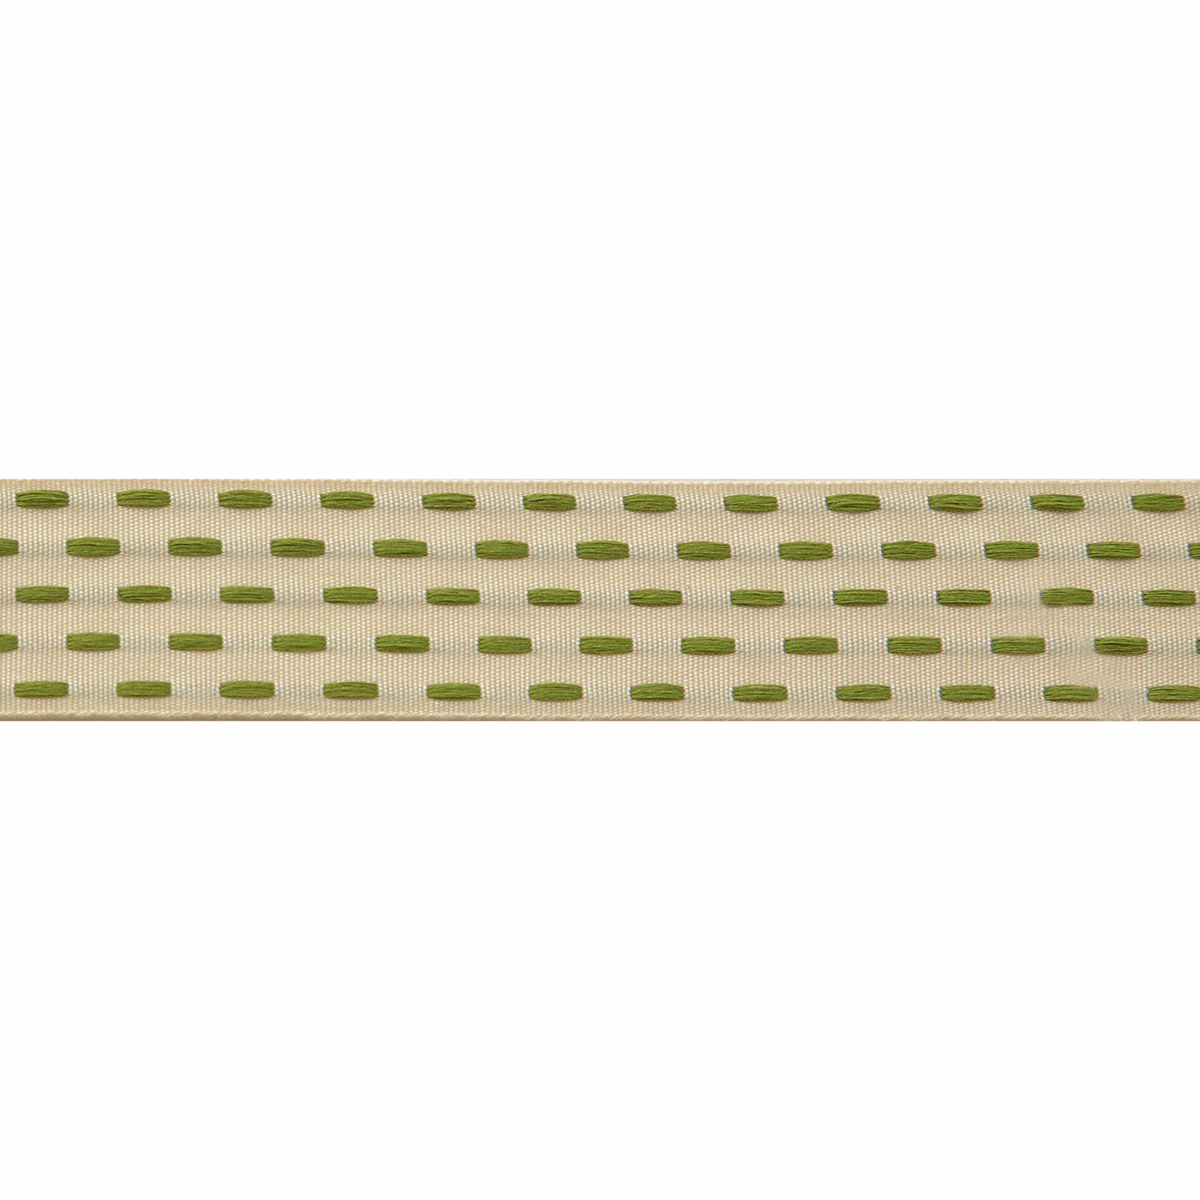 Berisfords Parallel Stitch Ribbon - 25mm Wide - Ivory / Cypress